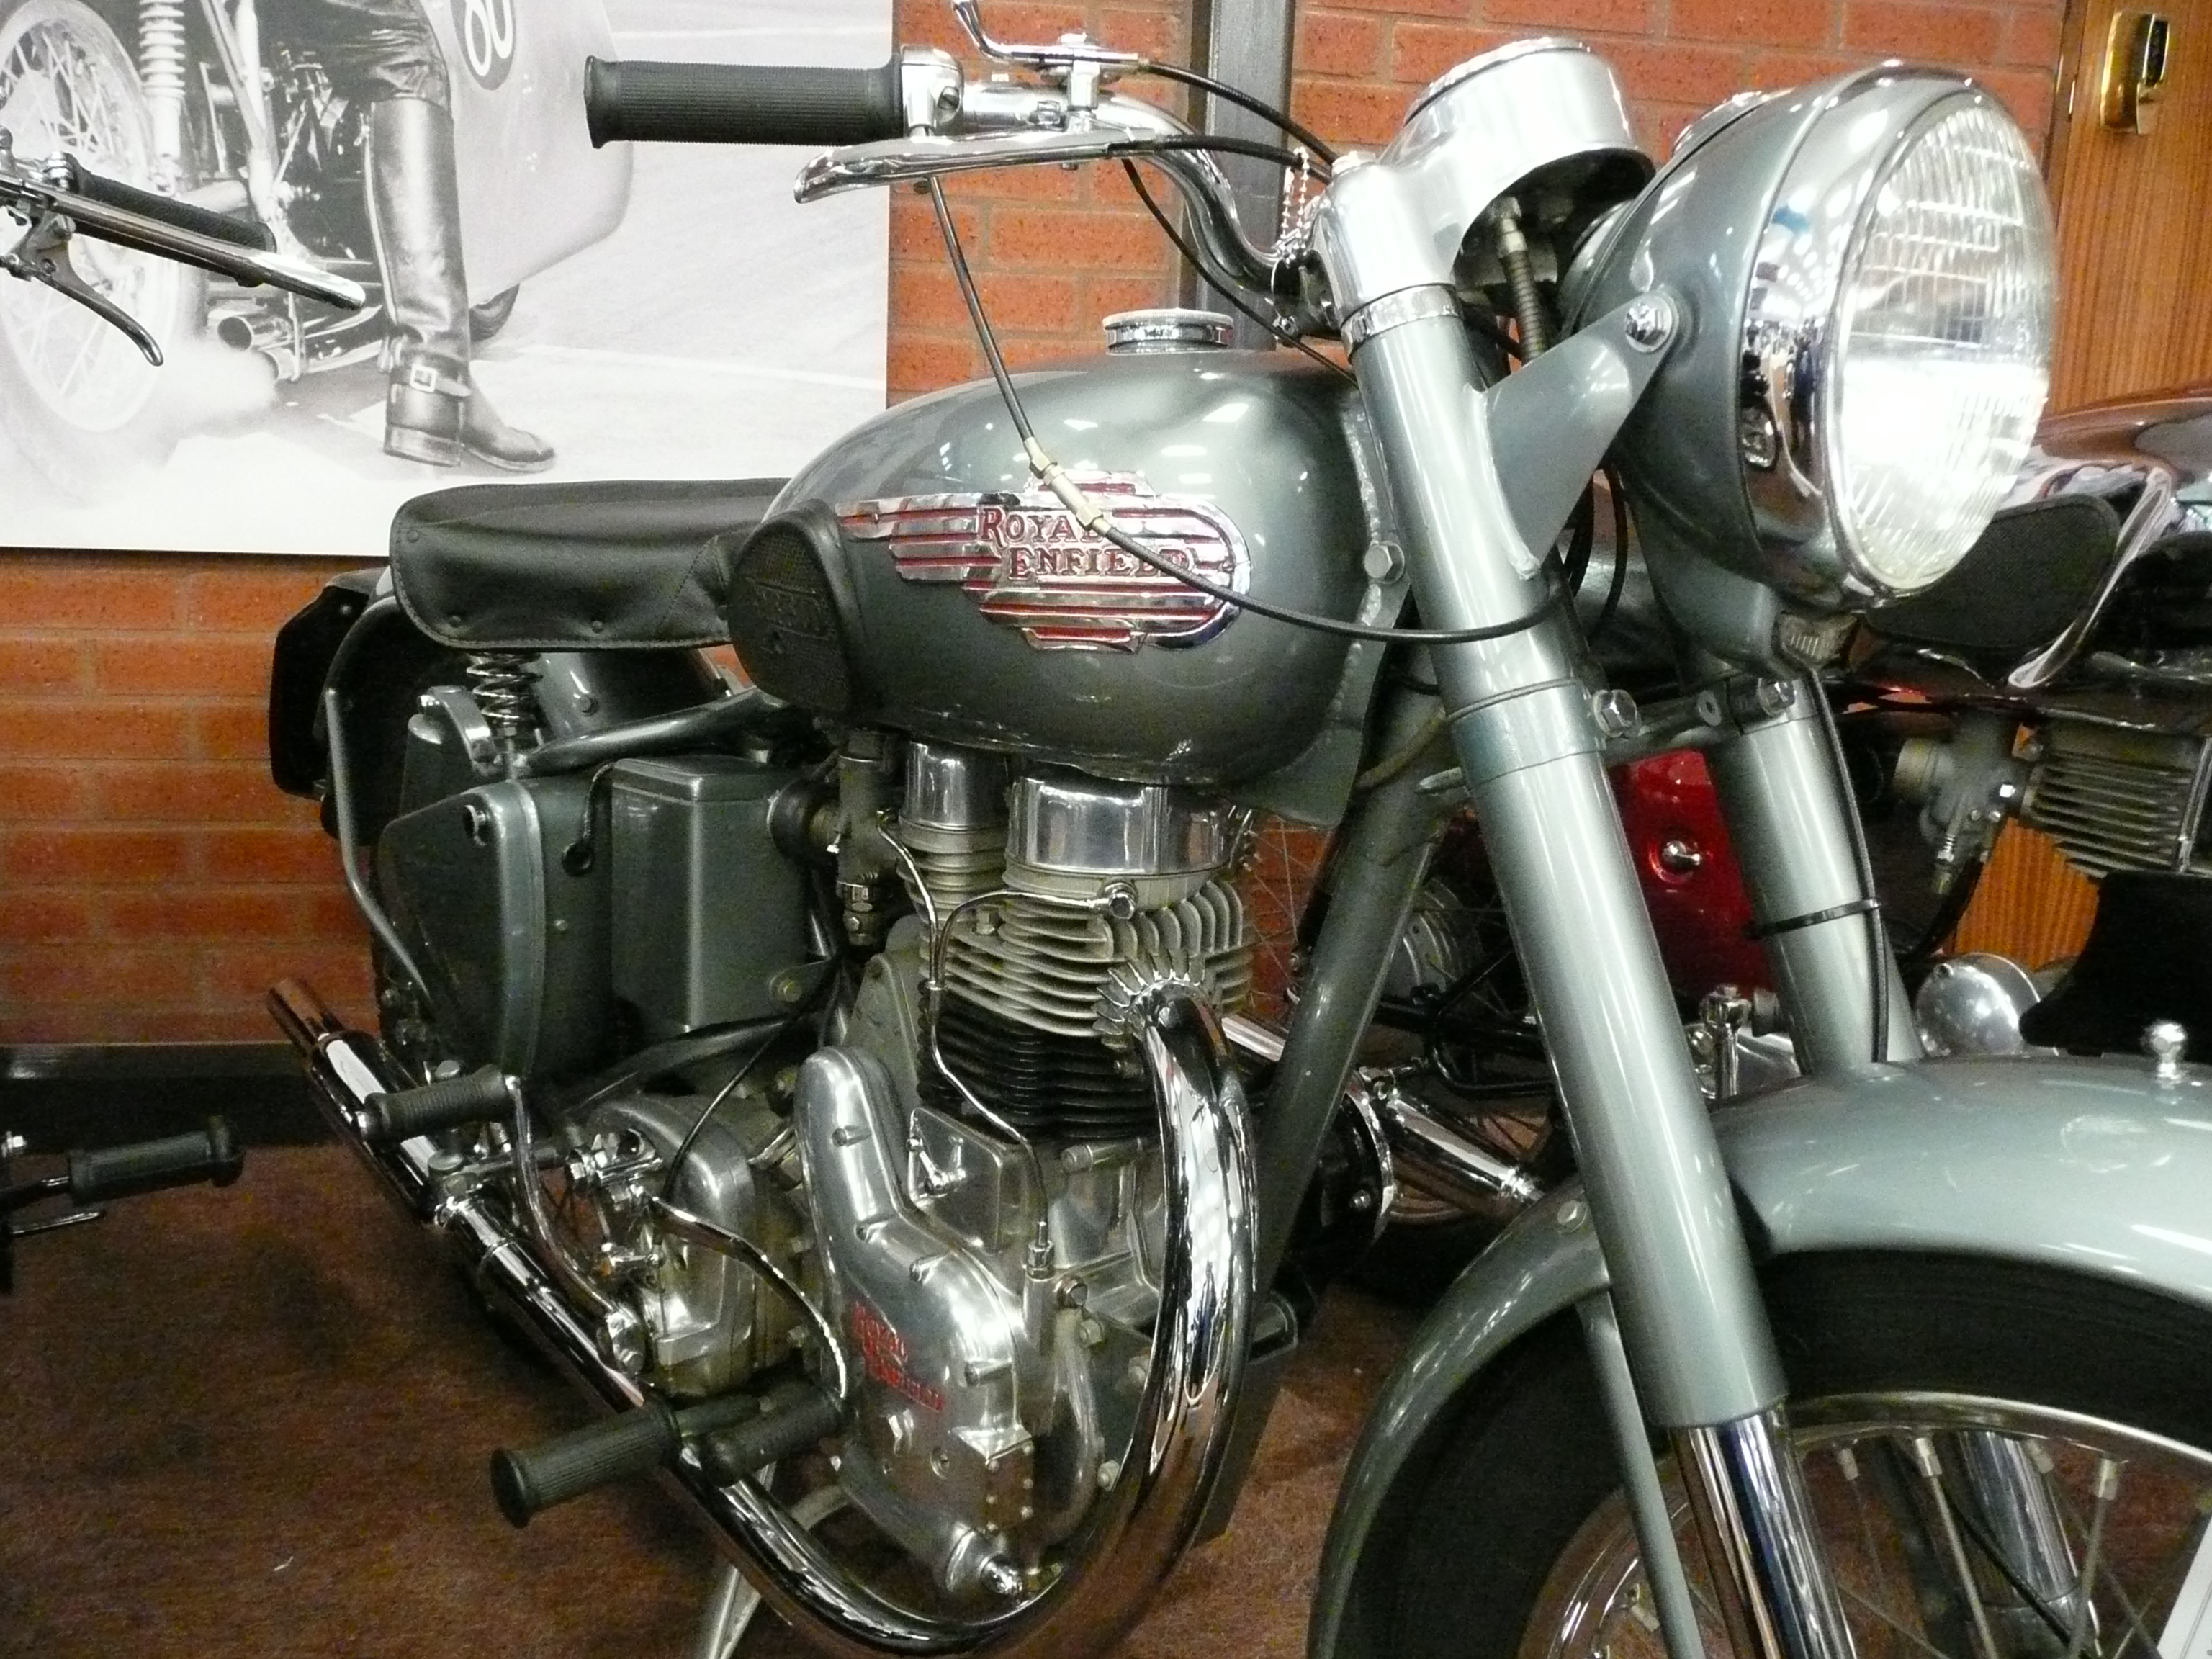 Royal Enfield Bullet 350 Classic 2008 images #123482